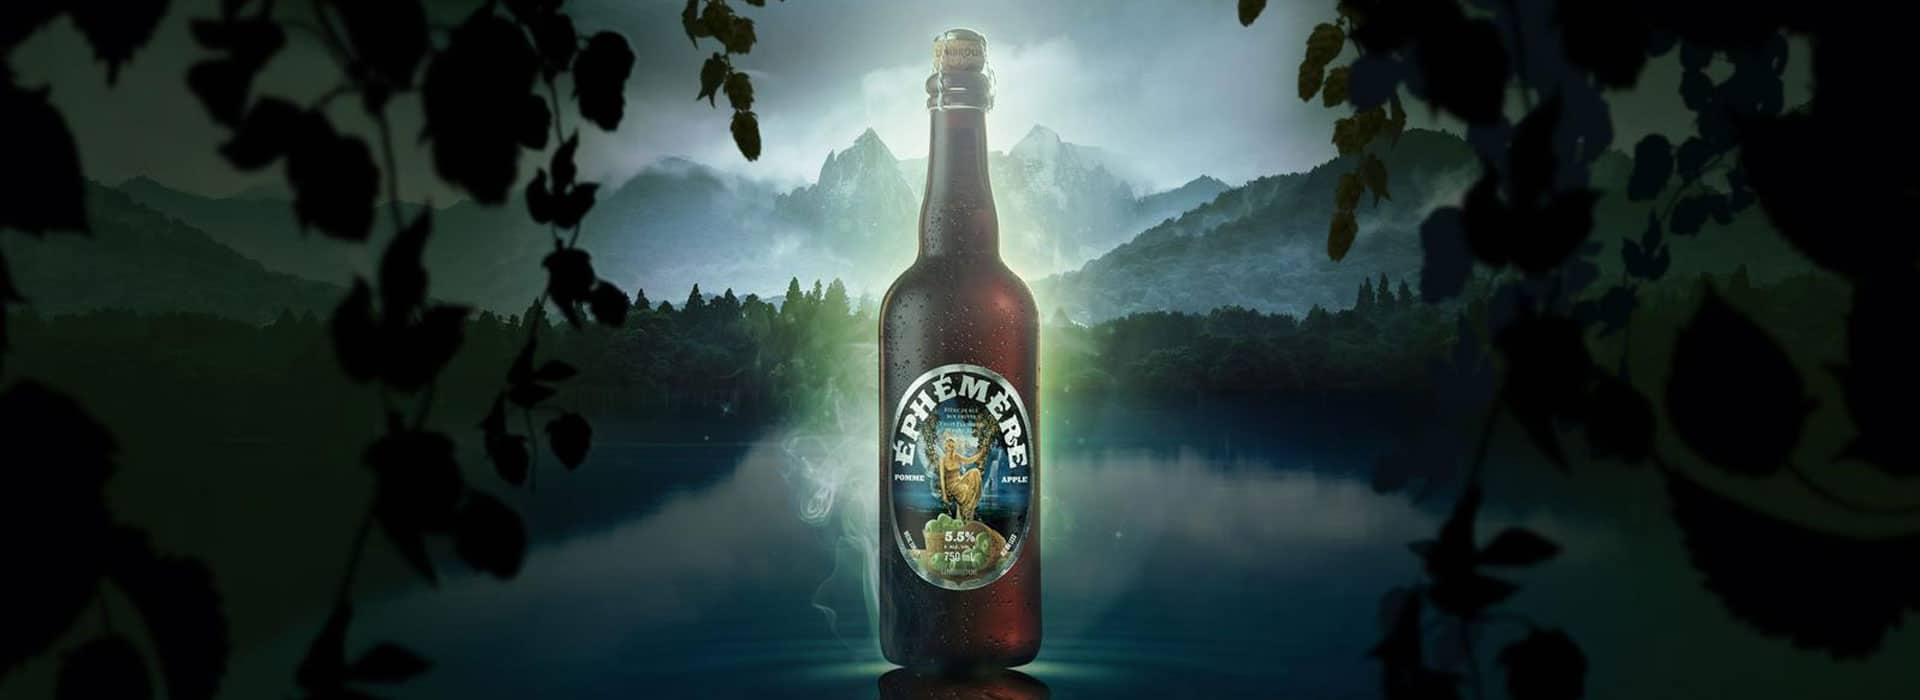 Apple beer Unibroue